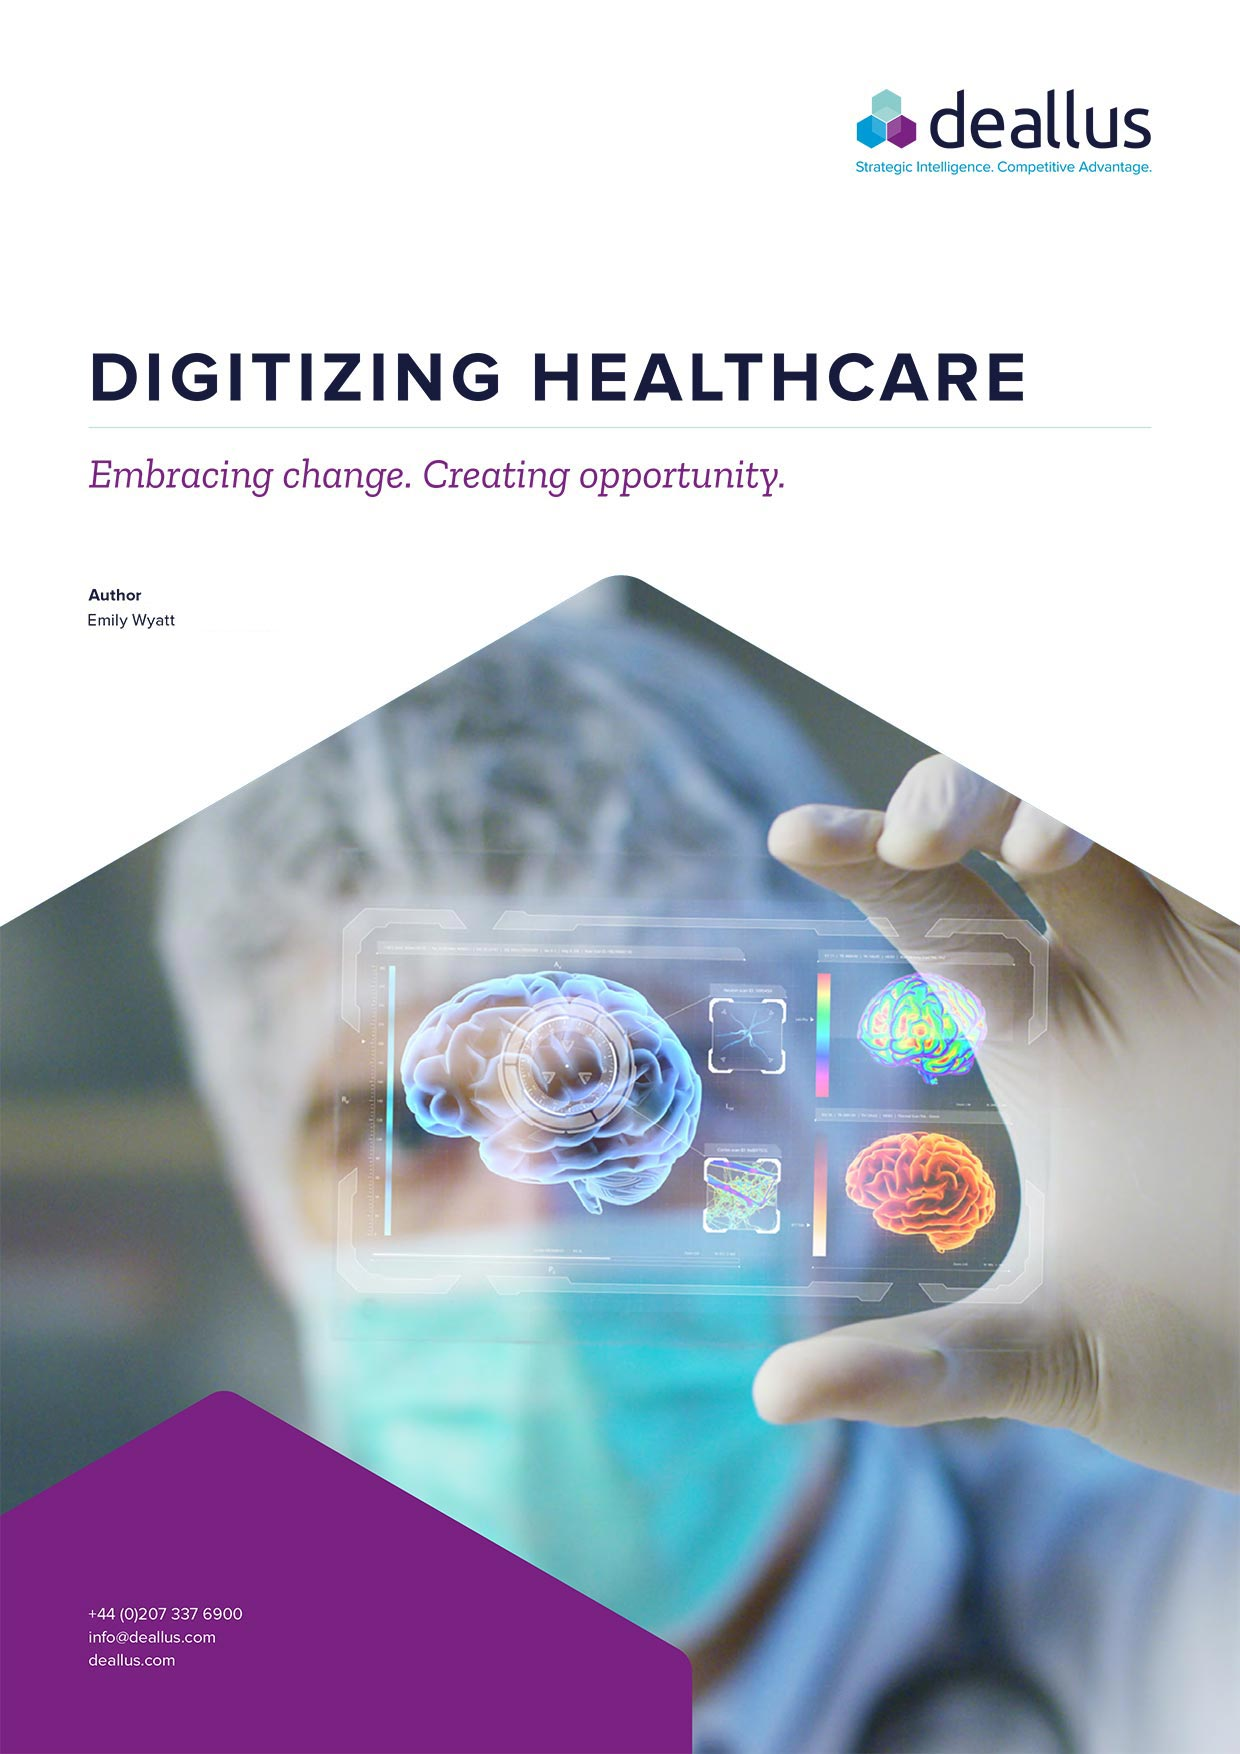 Digitizing Healthcare White Paper from Deallus